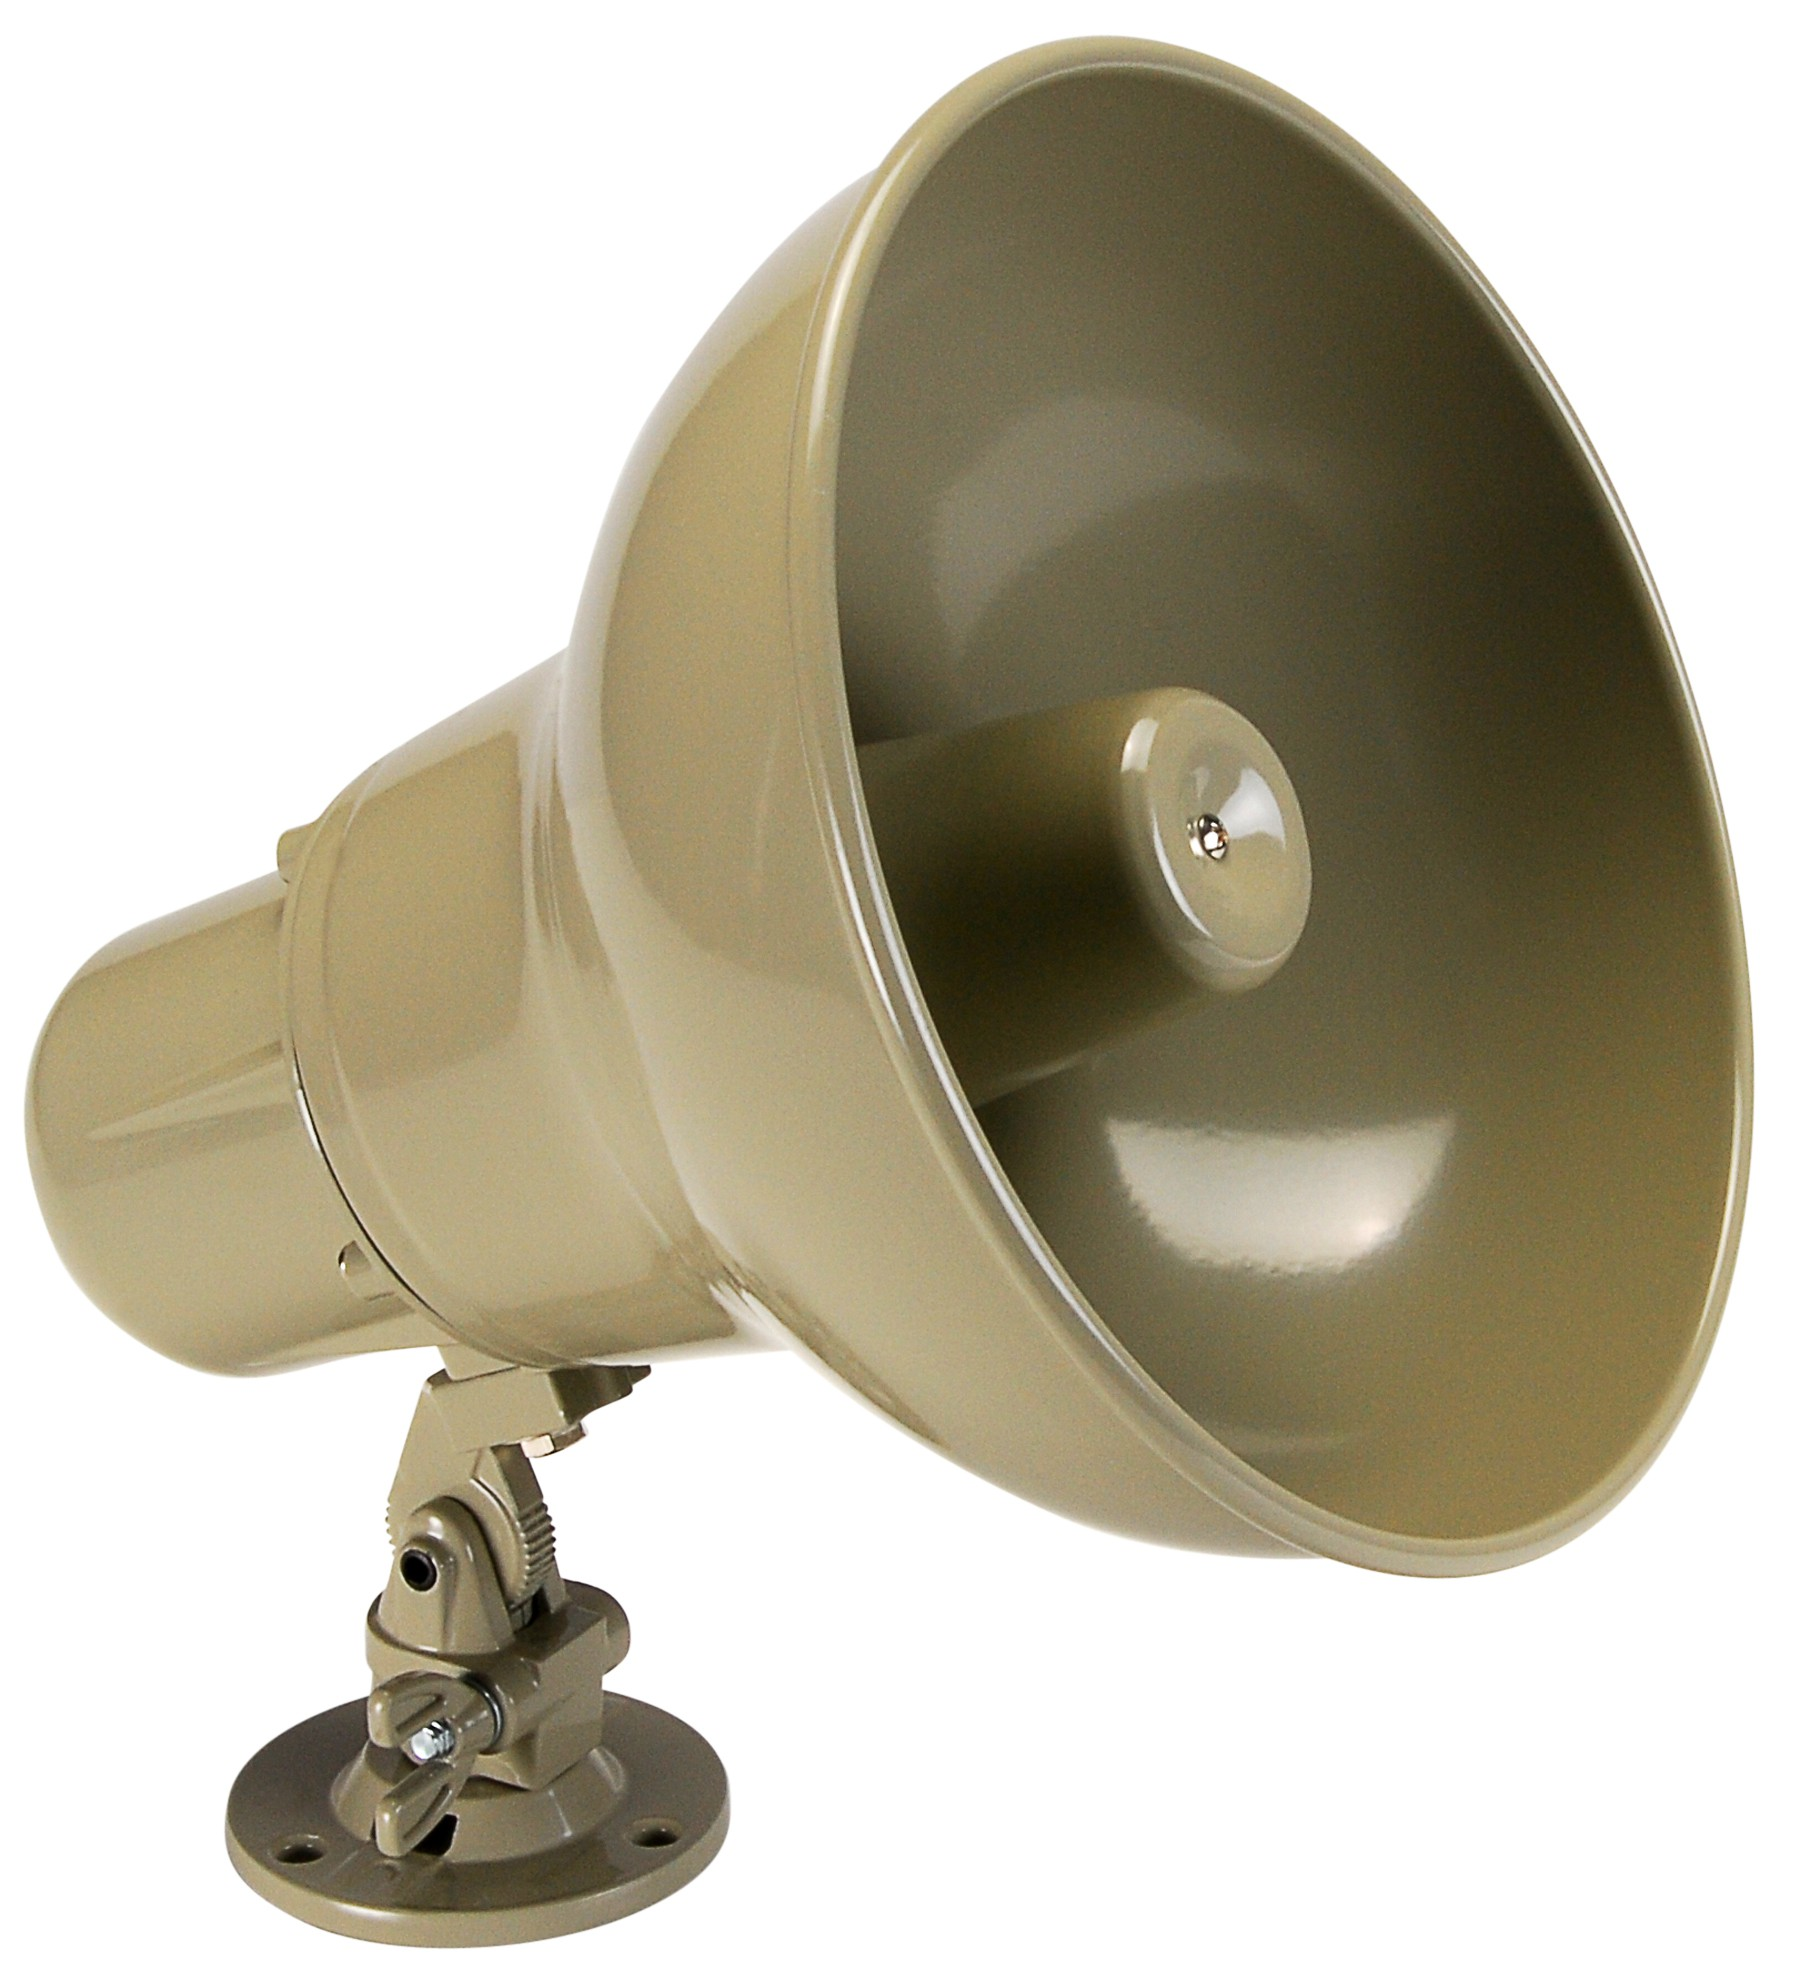 Paging Speakers and Horns